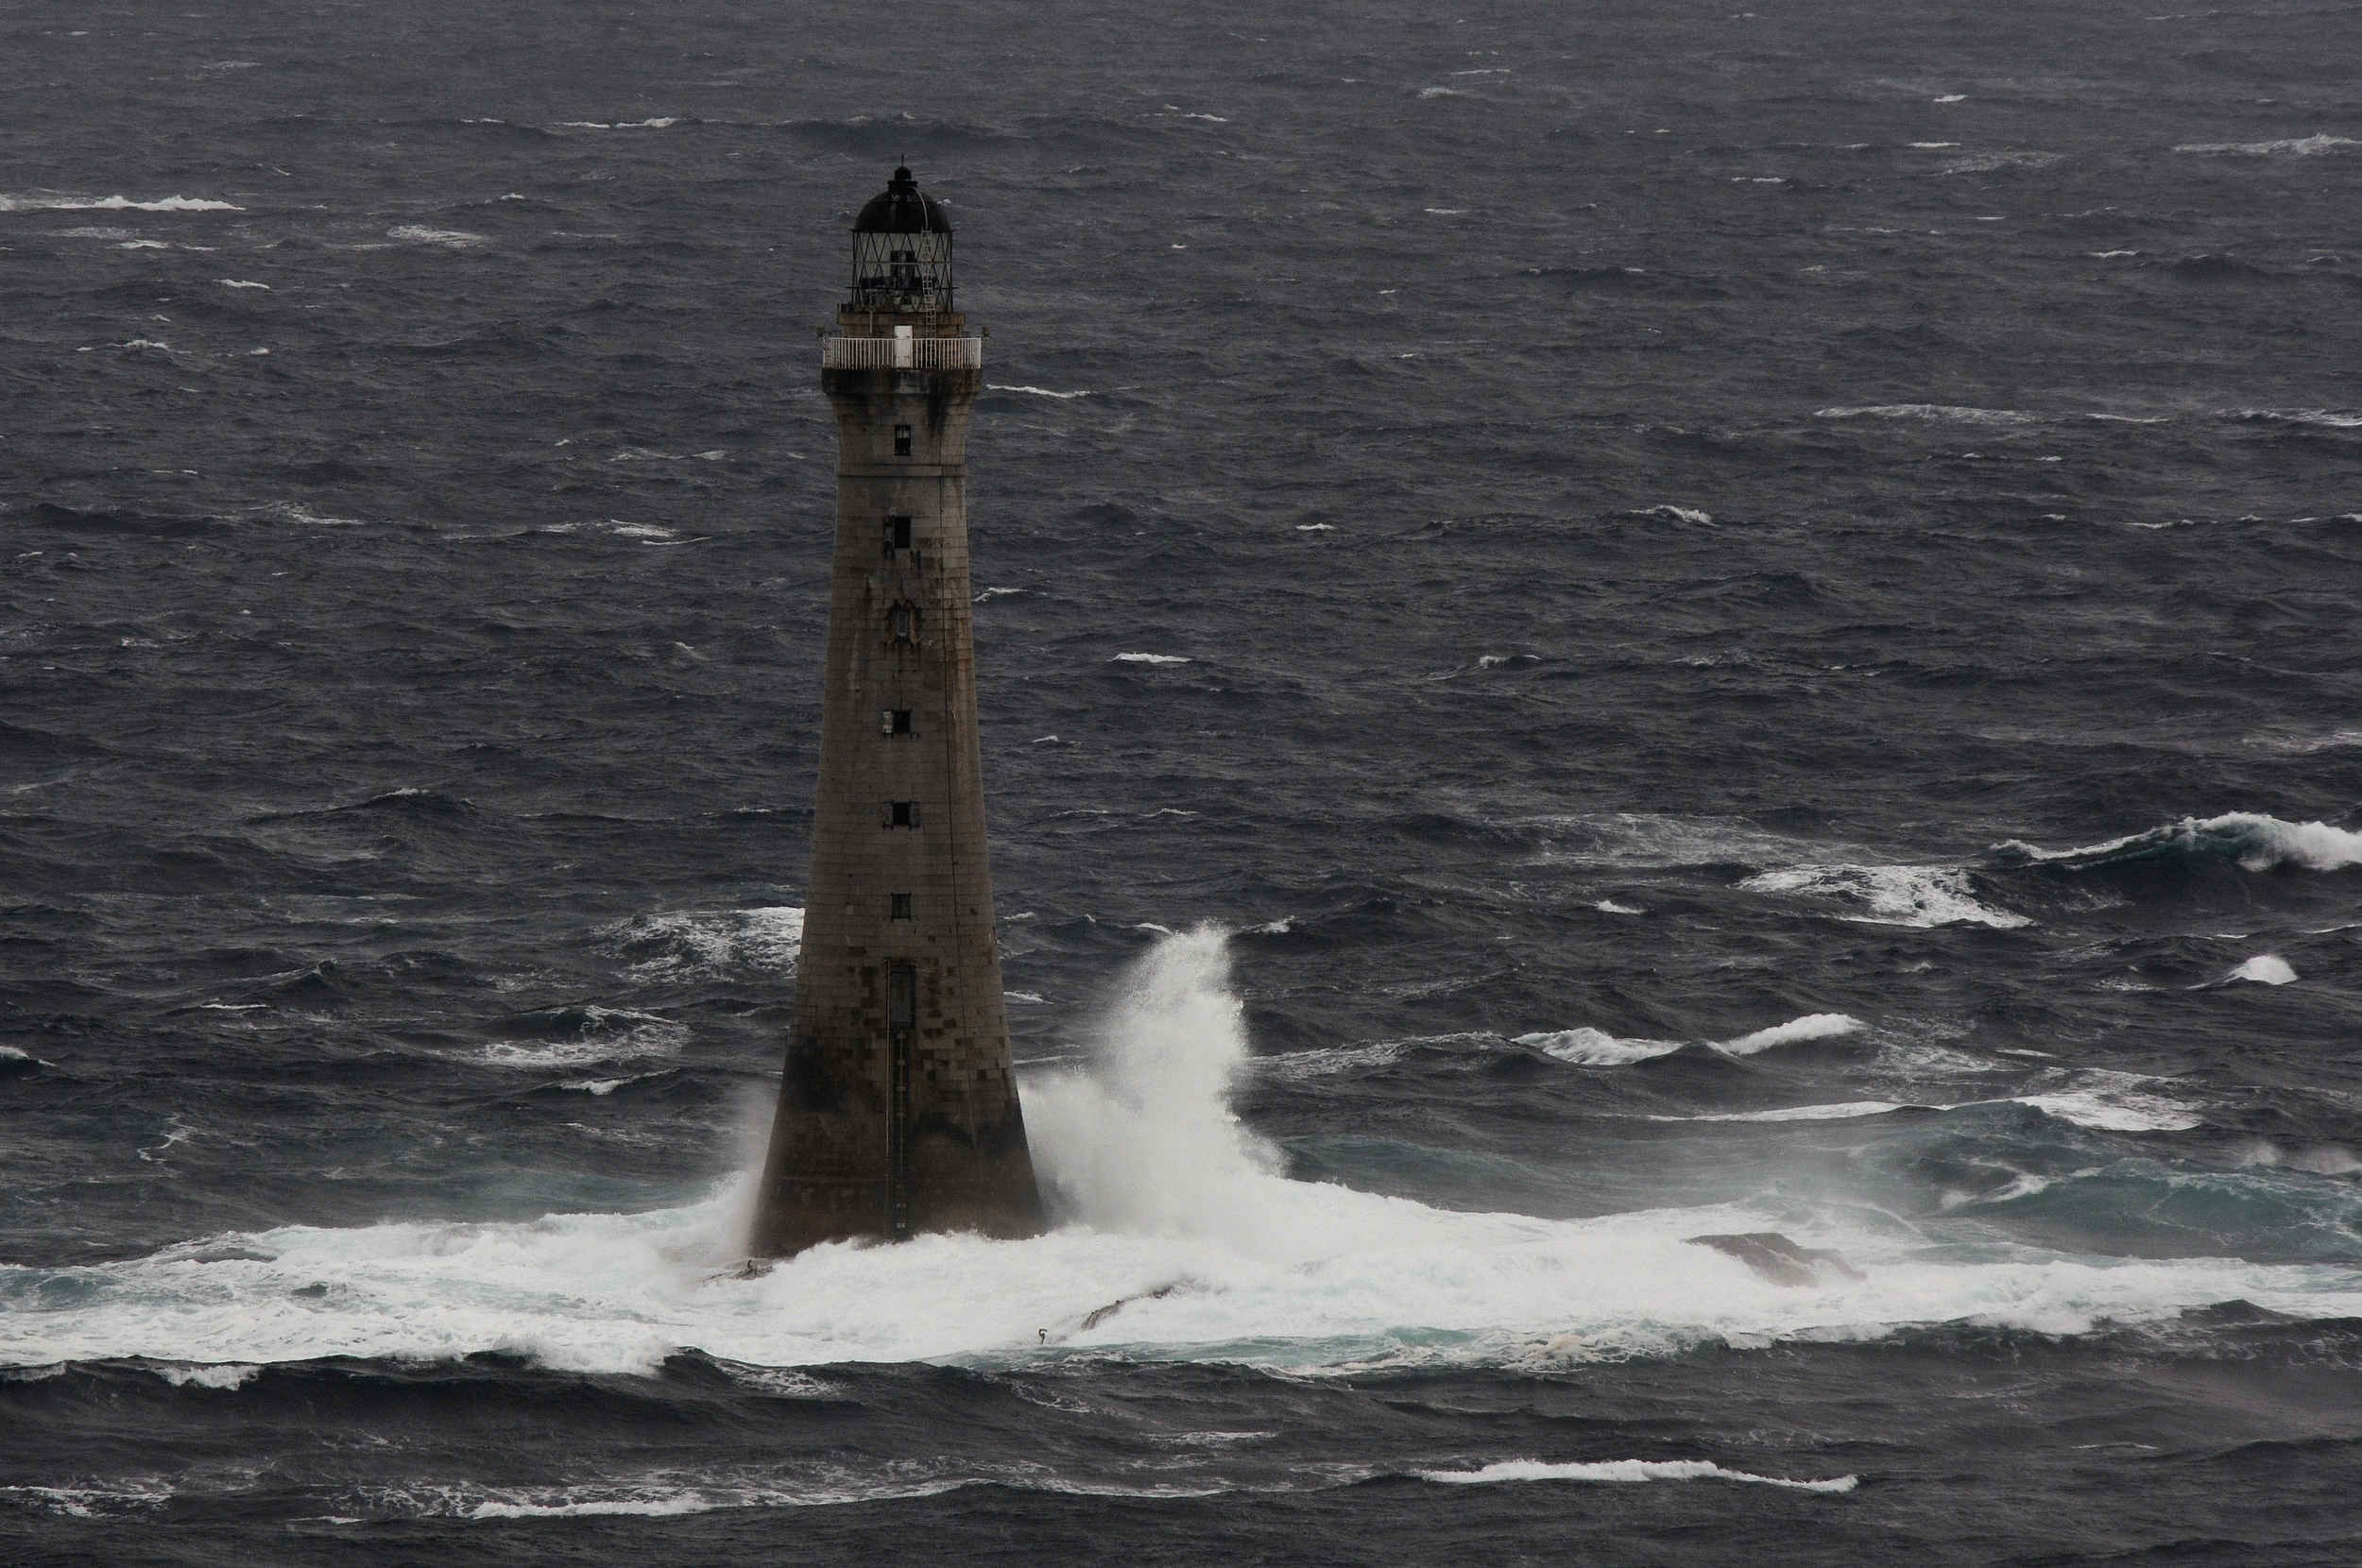 Chickens Rock lighthouse as seen from the Calf of Man